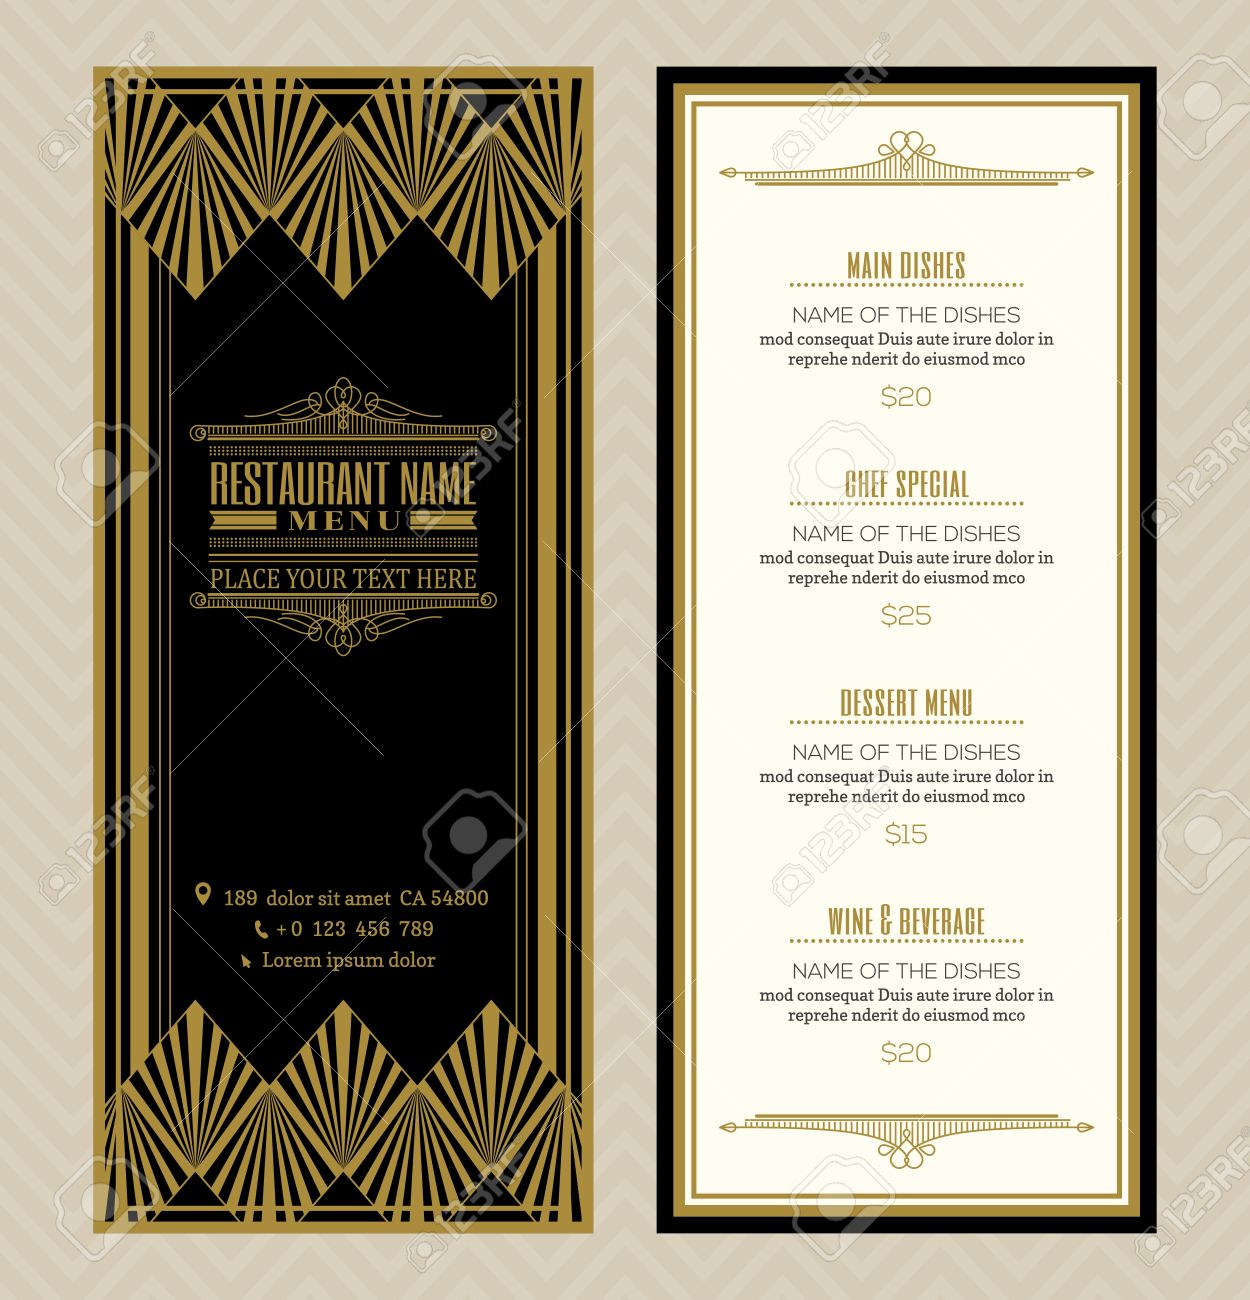 Menu Design Template | Restaurant Or Cafe Menu Design Template With Vintage Retro Art